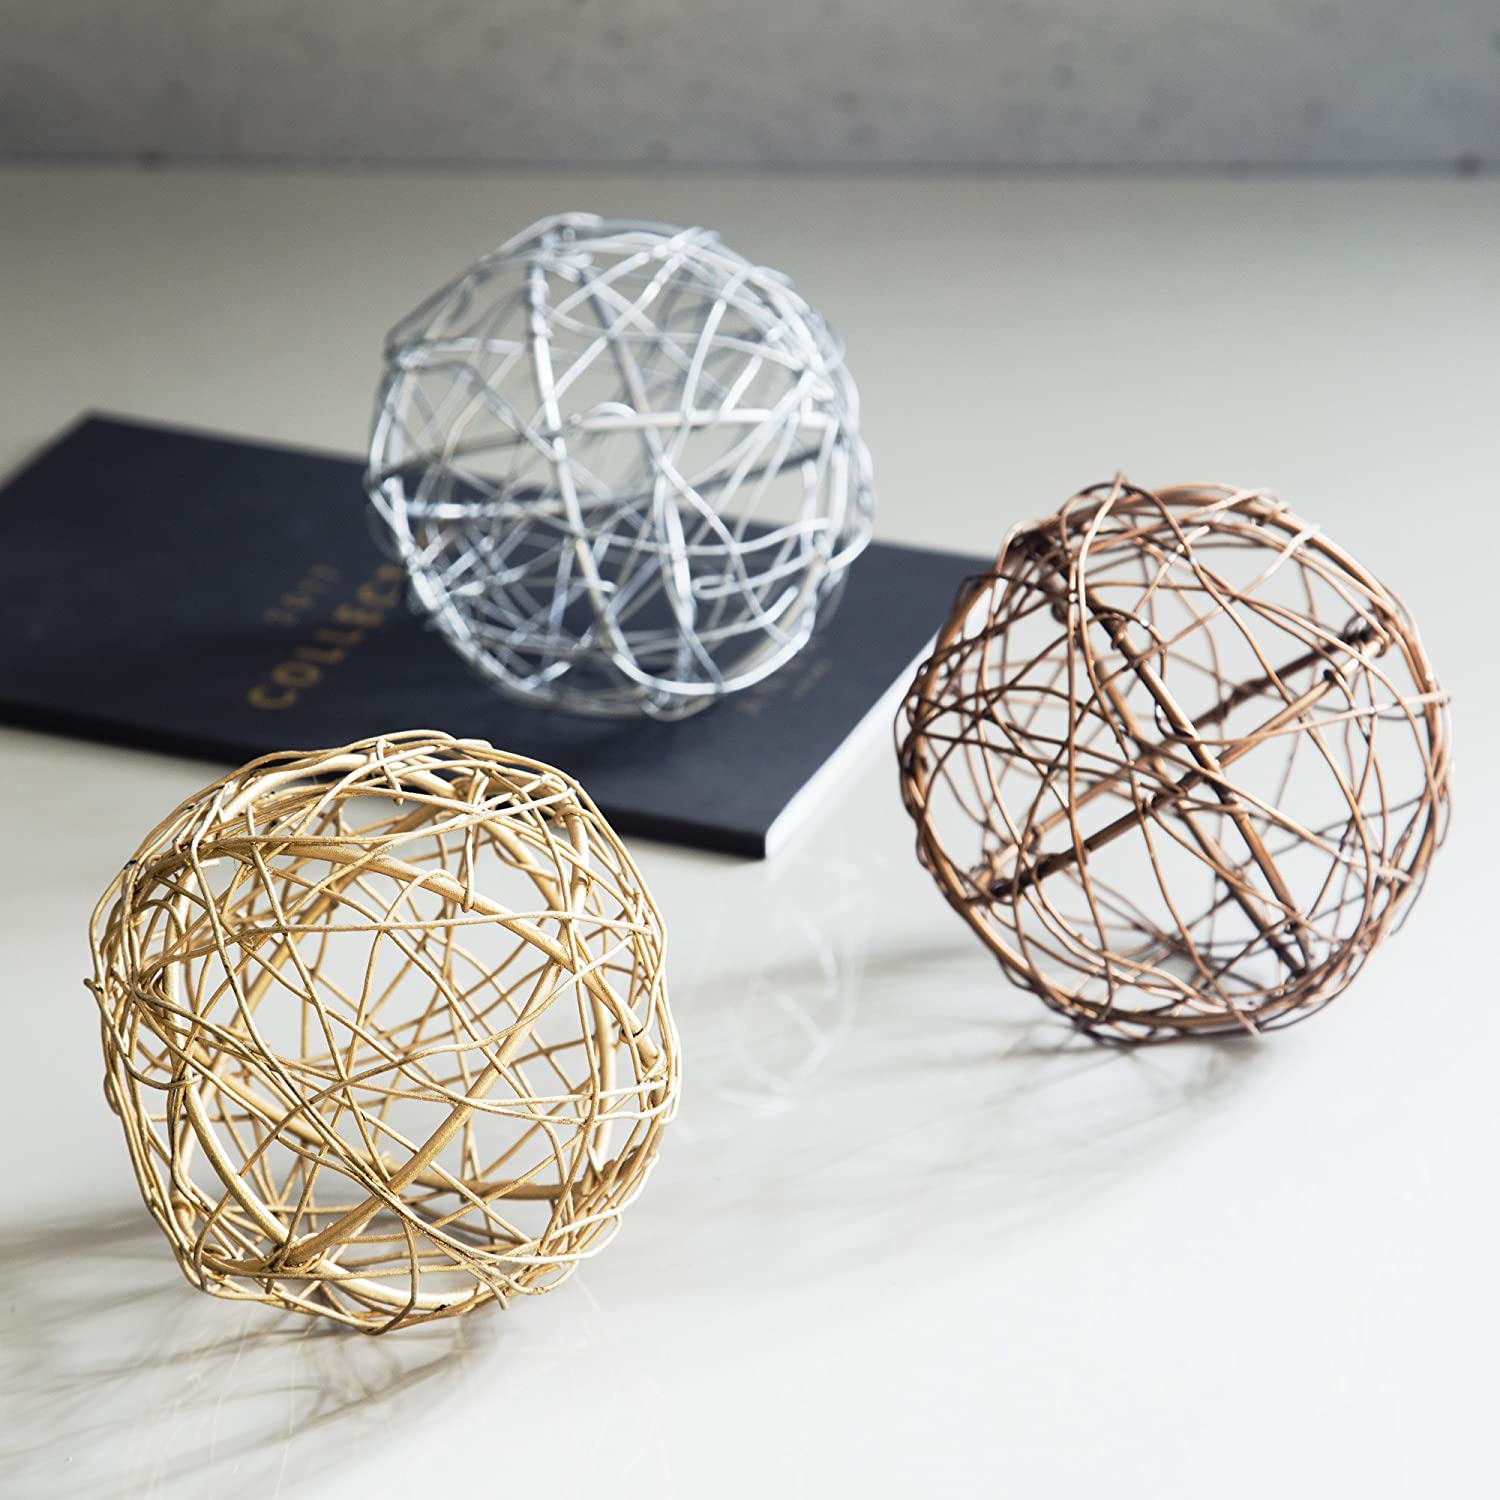 4 Metal Decorative Orbs Decor Set of 3 Gold Silver /& Copper Ball Spheres Kitchen Home Office Bathroom Dining /& Living Room Accents Desktop Coffee Table Bowl Centerpiece Vase Fillers /& Mantles